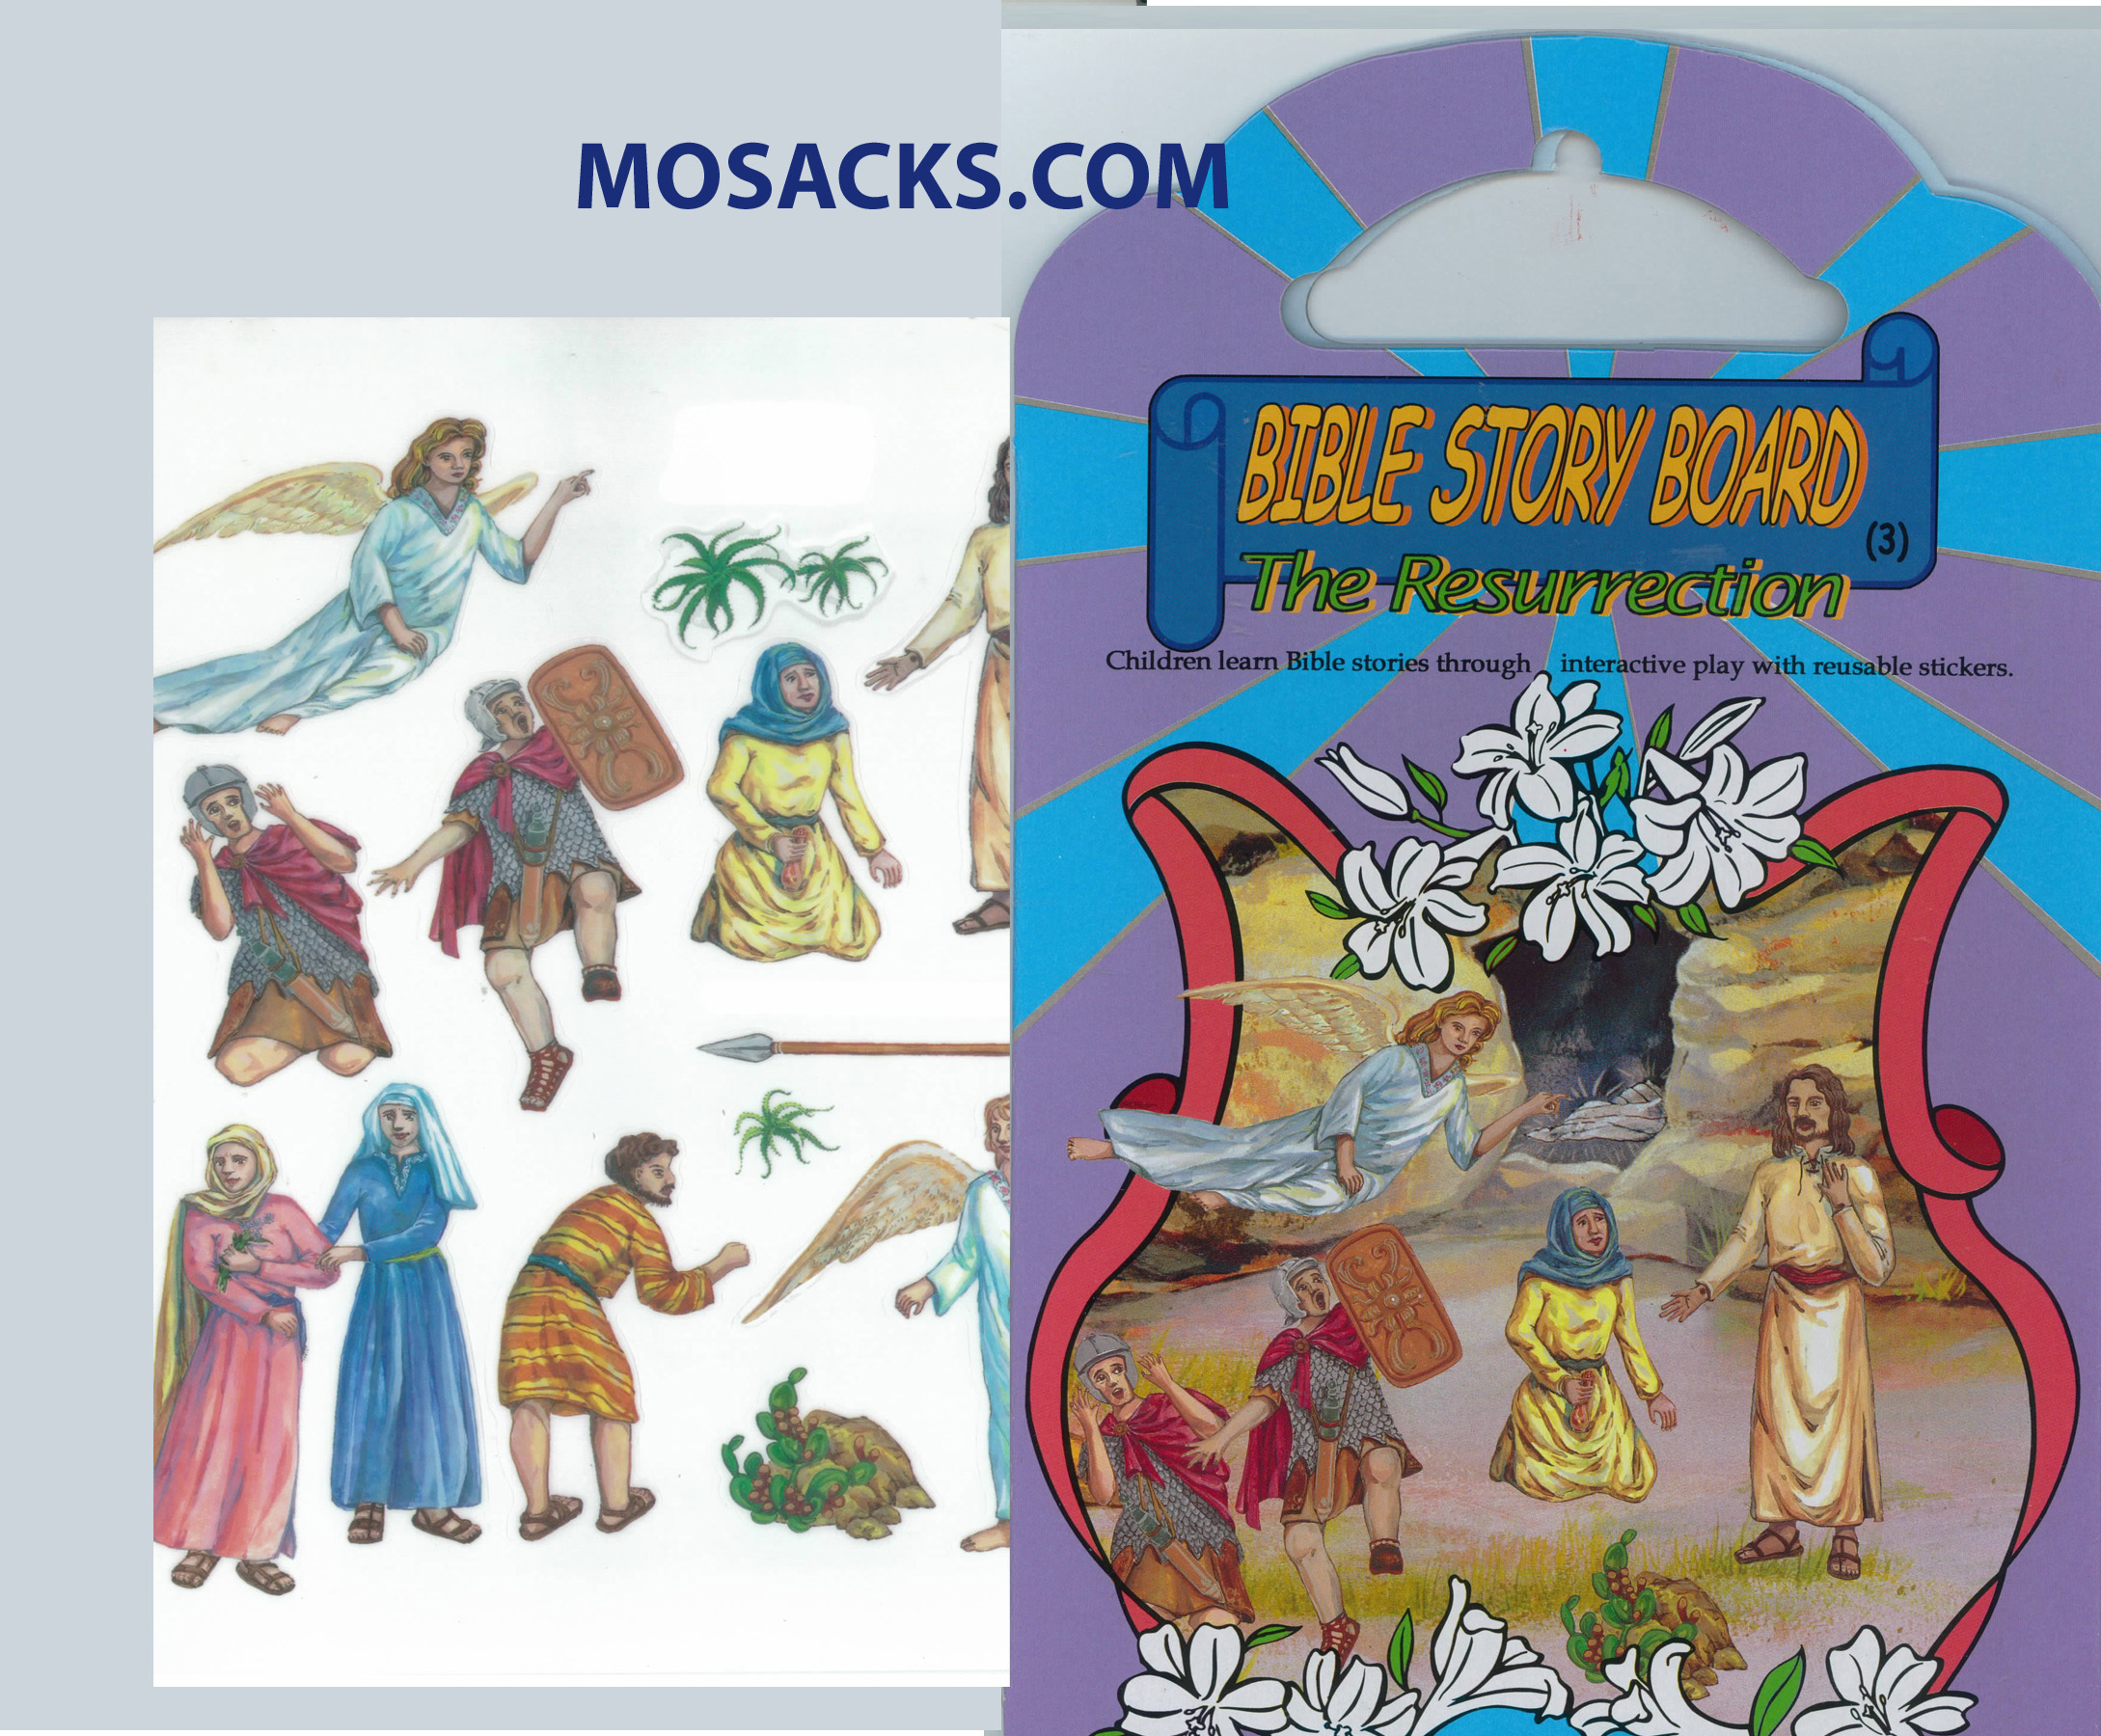 Bible Story Board The Resurrection 64-RES